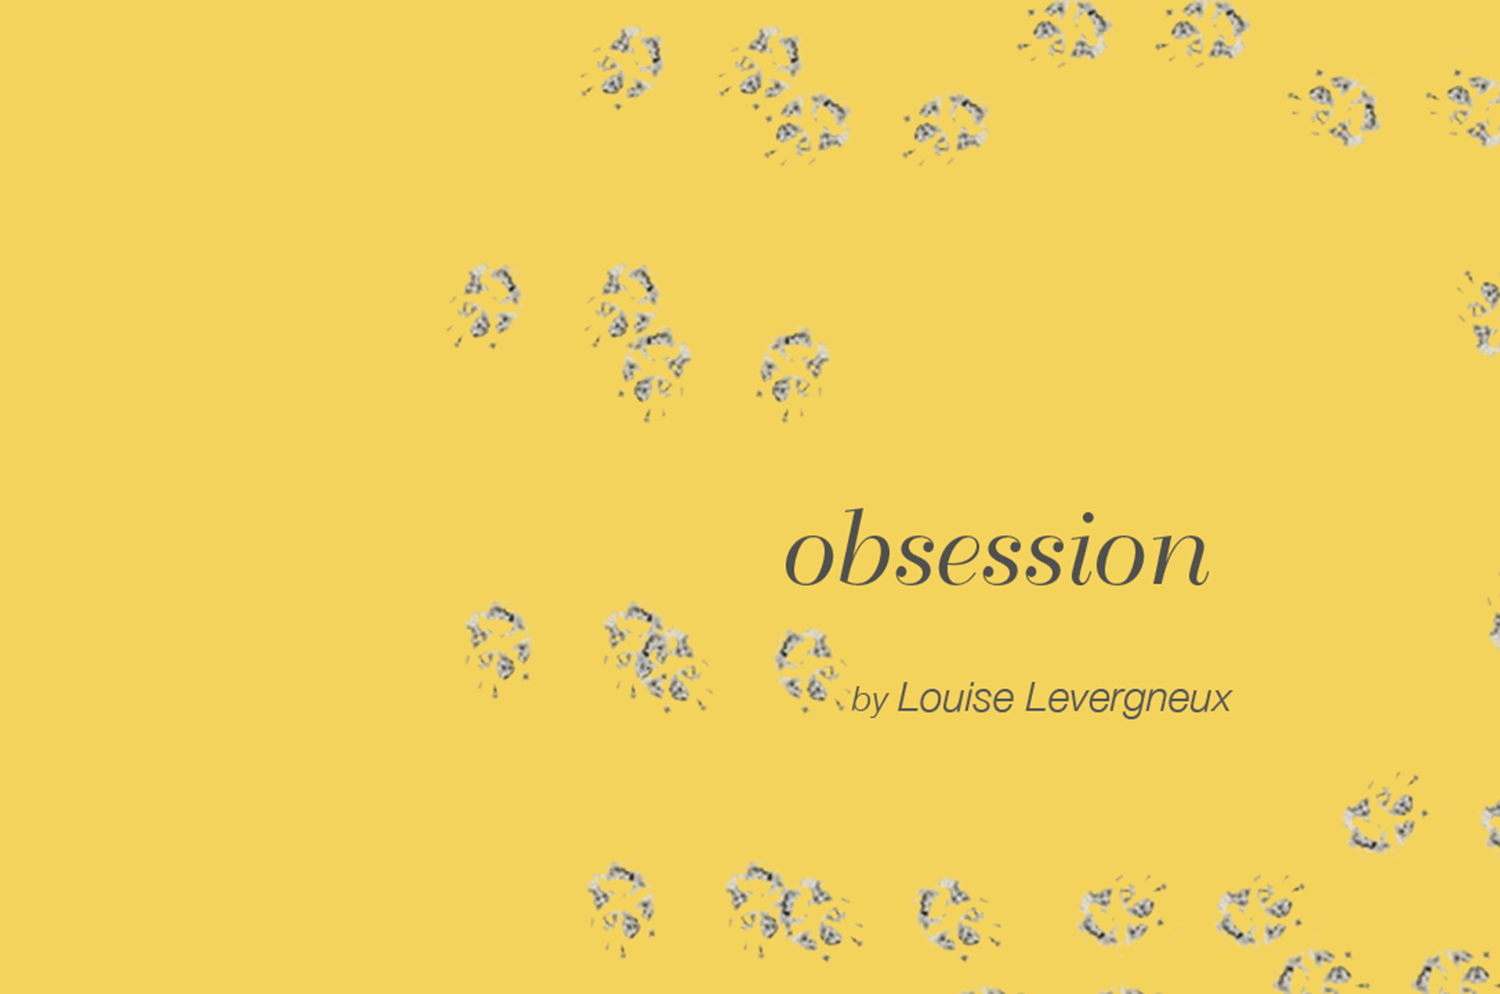 © 2012 Louise Levergneux, obsession